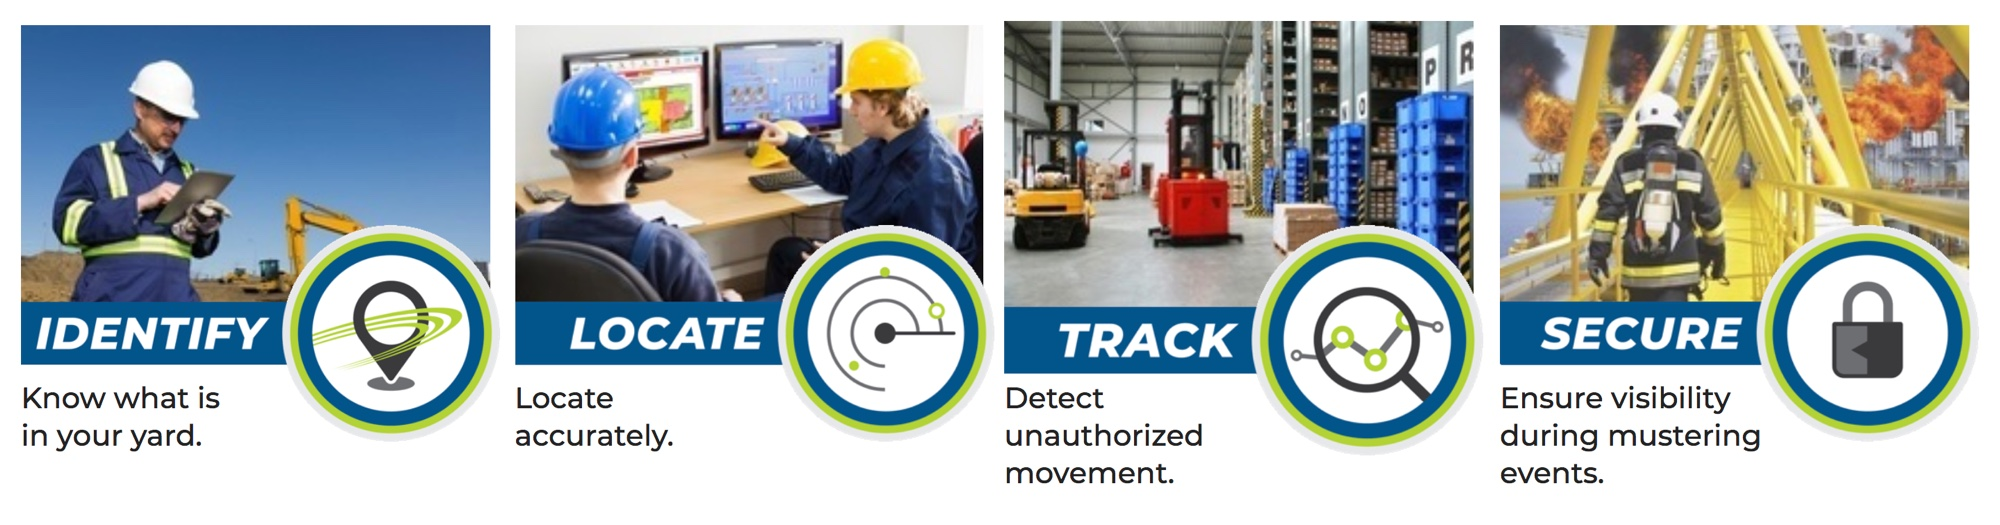 Real-Time Asset Tracking 2018 | Guard RFID